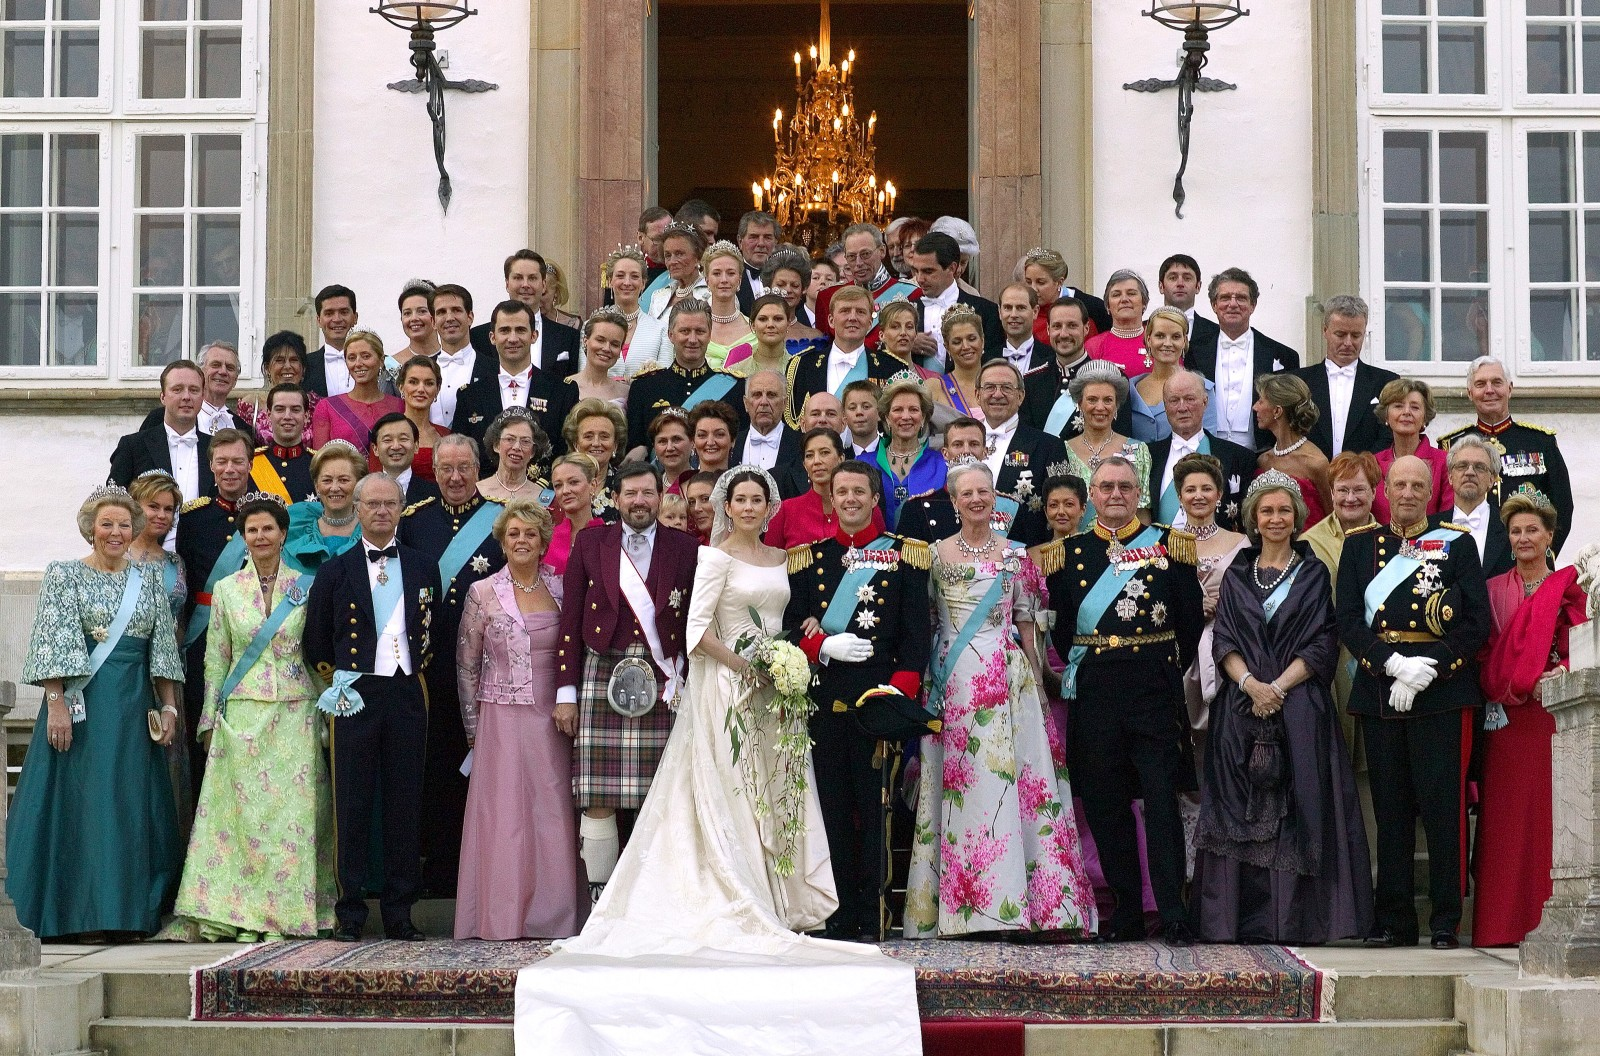 Clover Hill Wines served at the Royal Wedding. Image: Crown Prince Frederik and Crown Princess Mary pose with family and guests on the stairs to Fredensborg Palace prior to the wedding banquet Friday May 14, 2004. First row from left: Queen of the Netherlands Beatrix, Queen of Sweden Silvia, King of Sweden Carl Gustav, Mrs. Susan Elisabeth Donaldson, Professor John Donaldson, Crown Princess Mary, Crown Prince Frederk, Danish Queen Margrethe, Prince Consort Henrik, Queen of Spain Sofia, King Harald of Norway and Queen Sonja of Norway. Second row from left: Grand Duchess of Luxembourg Maria Teresa. King Albert II of Belgium, Queen Paola of Belgium, Ms. Amber Petty, Mrs. Scott Bailey, Mrs. Jane Stephens, Danish Prince Joachim, Princess Alexandra, Mrs. Musaif, President of Iceland Olafur Grimson, President of Finland Tarja Halonen and Dr. Arajaervi. Thrid row from left: Mrs. Jeffrey, Govenor General of Australia Michael Jeffrey, Princess Elisabeth of Denmark, M. Claude Bardin, Mme Bernadette Chirac, Mrs. John Stuart Donaldson, Queen Anne-Marie, King Konstantin, Princess Benedikte of Berleburg, Prince Richard of Berleburg and Count and Countess Etienne de Monpezat. Fourth row from left: Prince Gustav of Berleburg, Prince Guillaume of Luxembourg, Crown Prince Naruhito of Japan, Ms. Letizia Ortiz, Crown Prince Felipe of Spain, Crown Princess Victoria of Sweden, Crown Prince Willem Alexander of the Netherlands, Crown Princess Maxima of the Netherlands, Crown Prince Haakon and Crown Princess Mette-Marit of Norway, Duke and Duchess of Brabant. Fith row from left: Countess and Count Jean-Baptiste de Monpezat, Crown Prince and Crown Princes Pavlos and Marie-Chantal of Greece, Prince Edward and Sophie of Wessex, Mrs. and Mr. Jacques Beauvillain and Mr. Craig Stephens. Sixth row from left: Mr. Carlos Morales Quintana and Princess Alexia, Count Jefferson and Princess Alexandra, Princess Nathalie, Prince Nikolaos of Greecwe, Princess Theodora and Mr.Scott Bailay. Seventh row from l